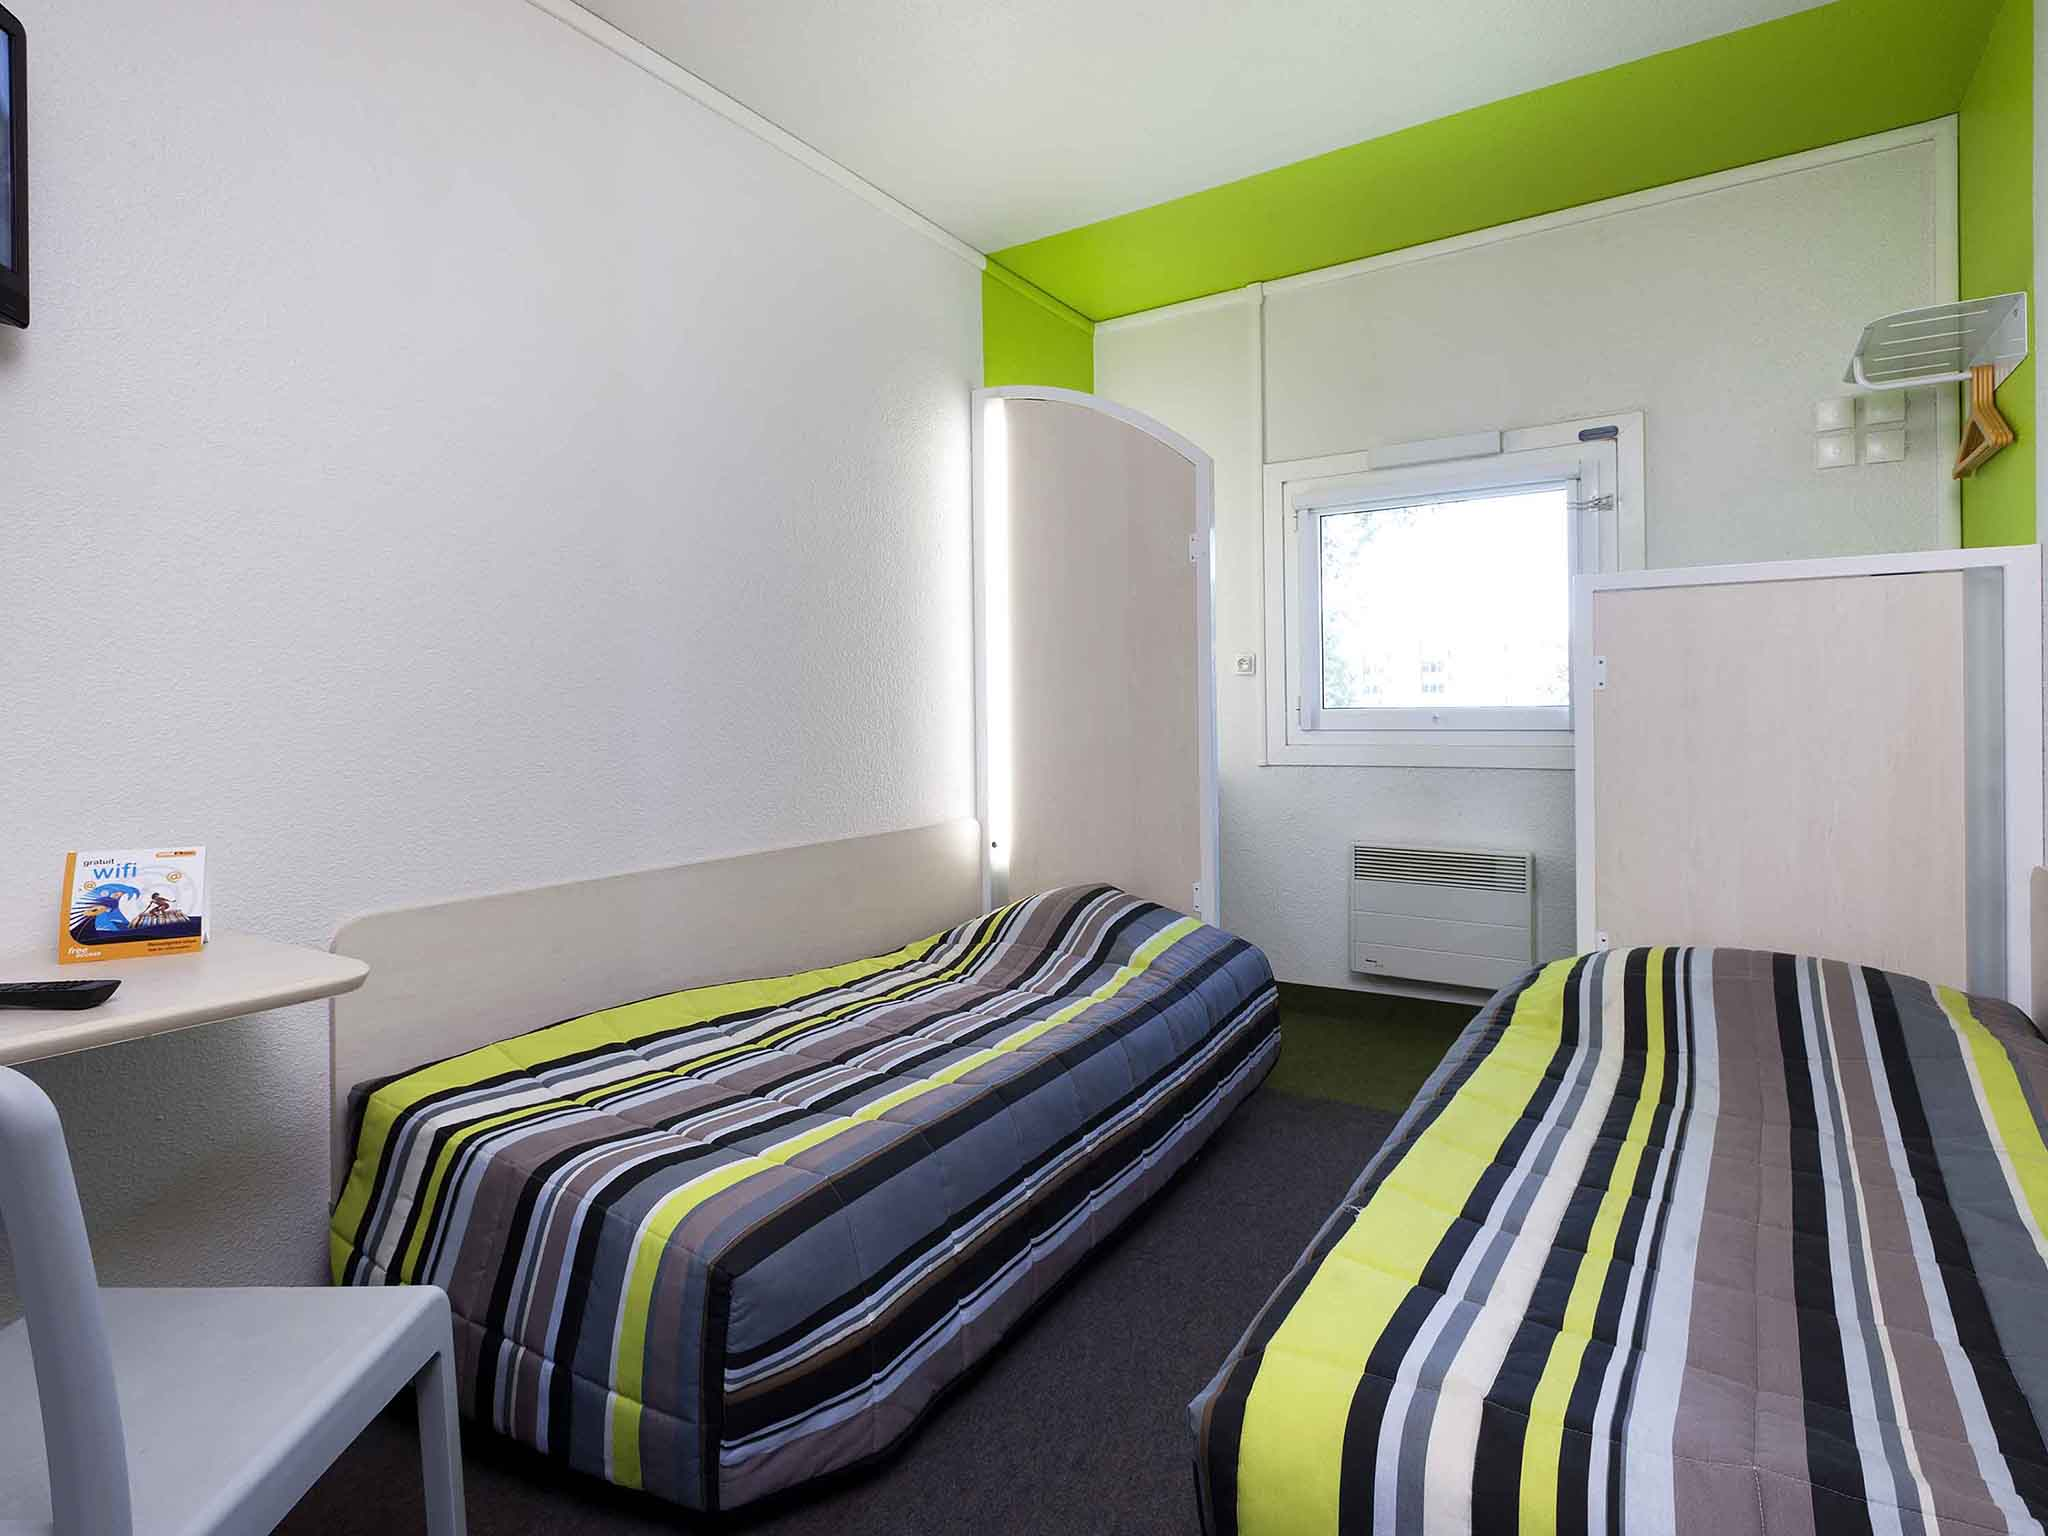 Hotell – hotelF1 Épinal Nord